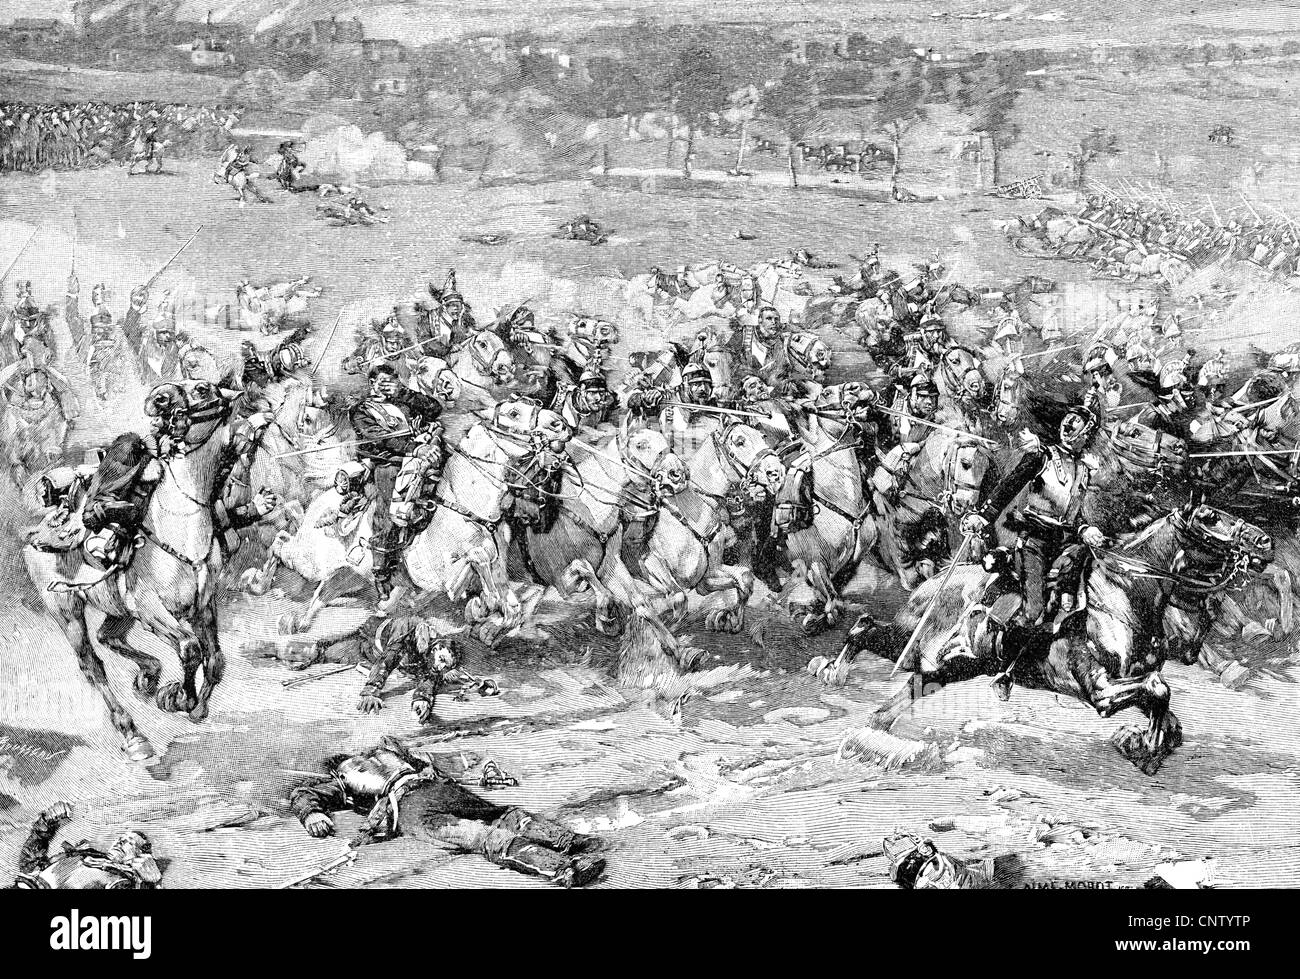 events, Franco-Prussian War 1870 - 1871, Battle of Woerth, 6.8.1870, charge of French cuirassiers, wood engraving Stock Photo